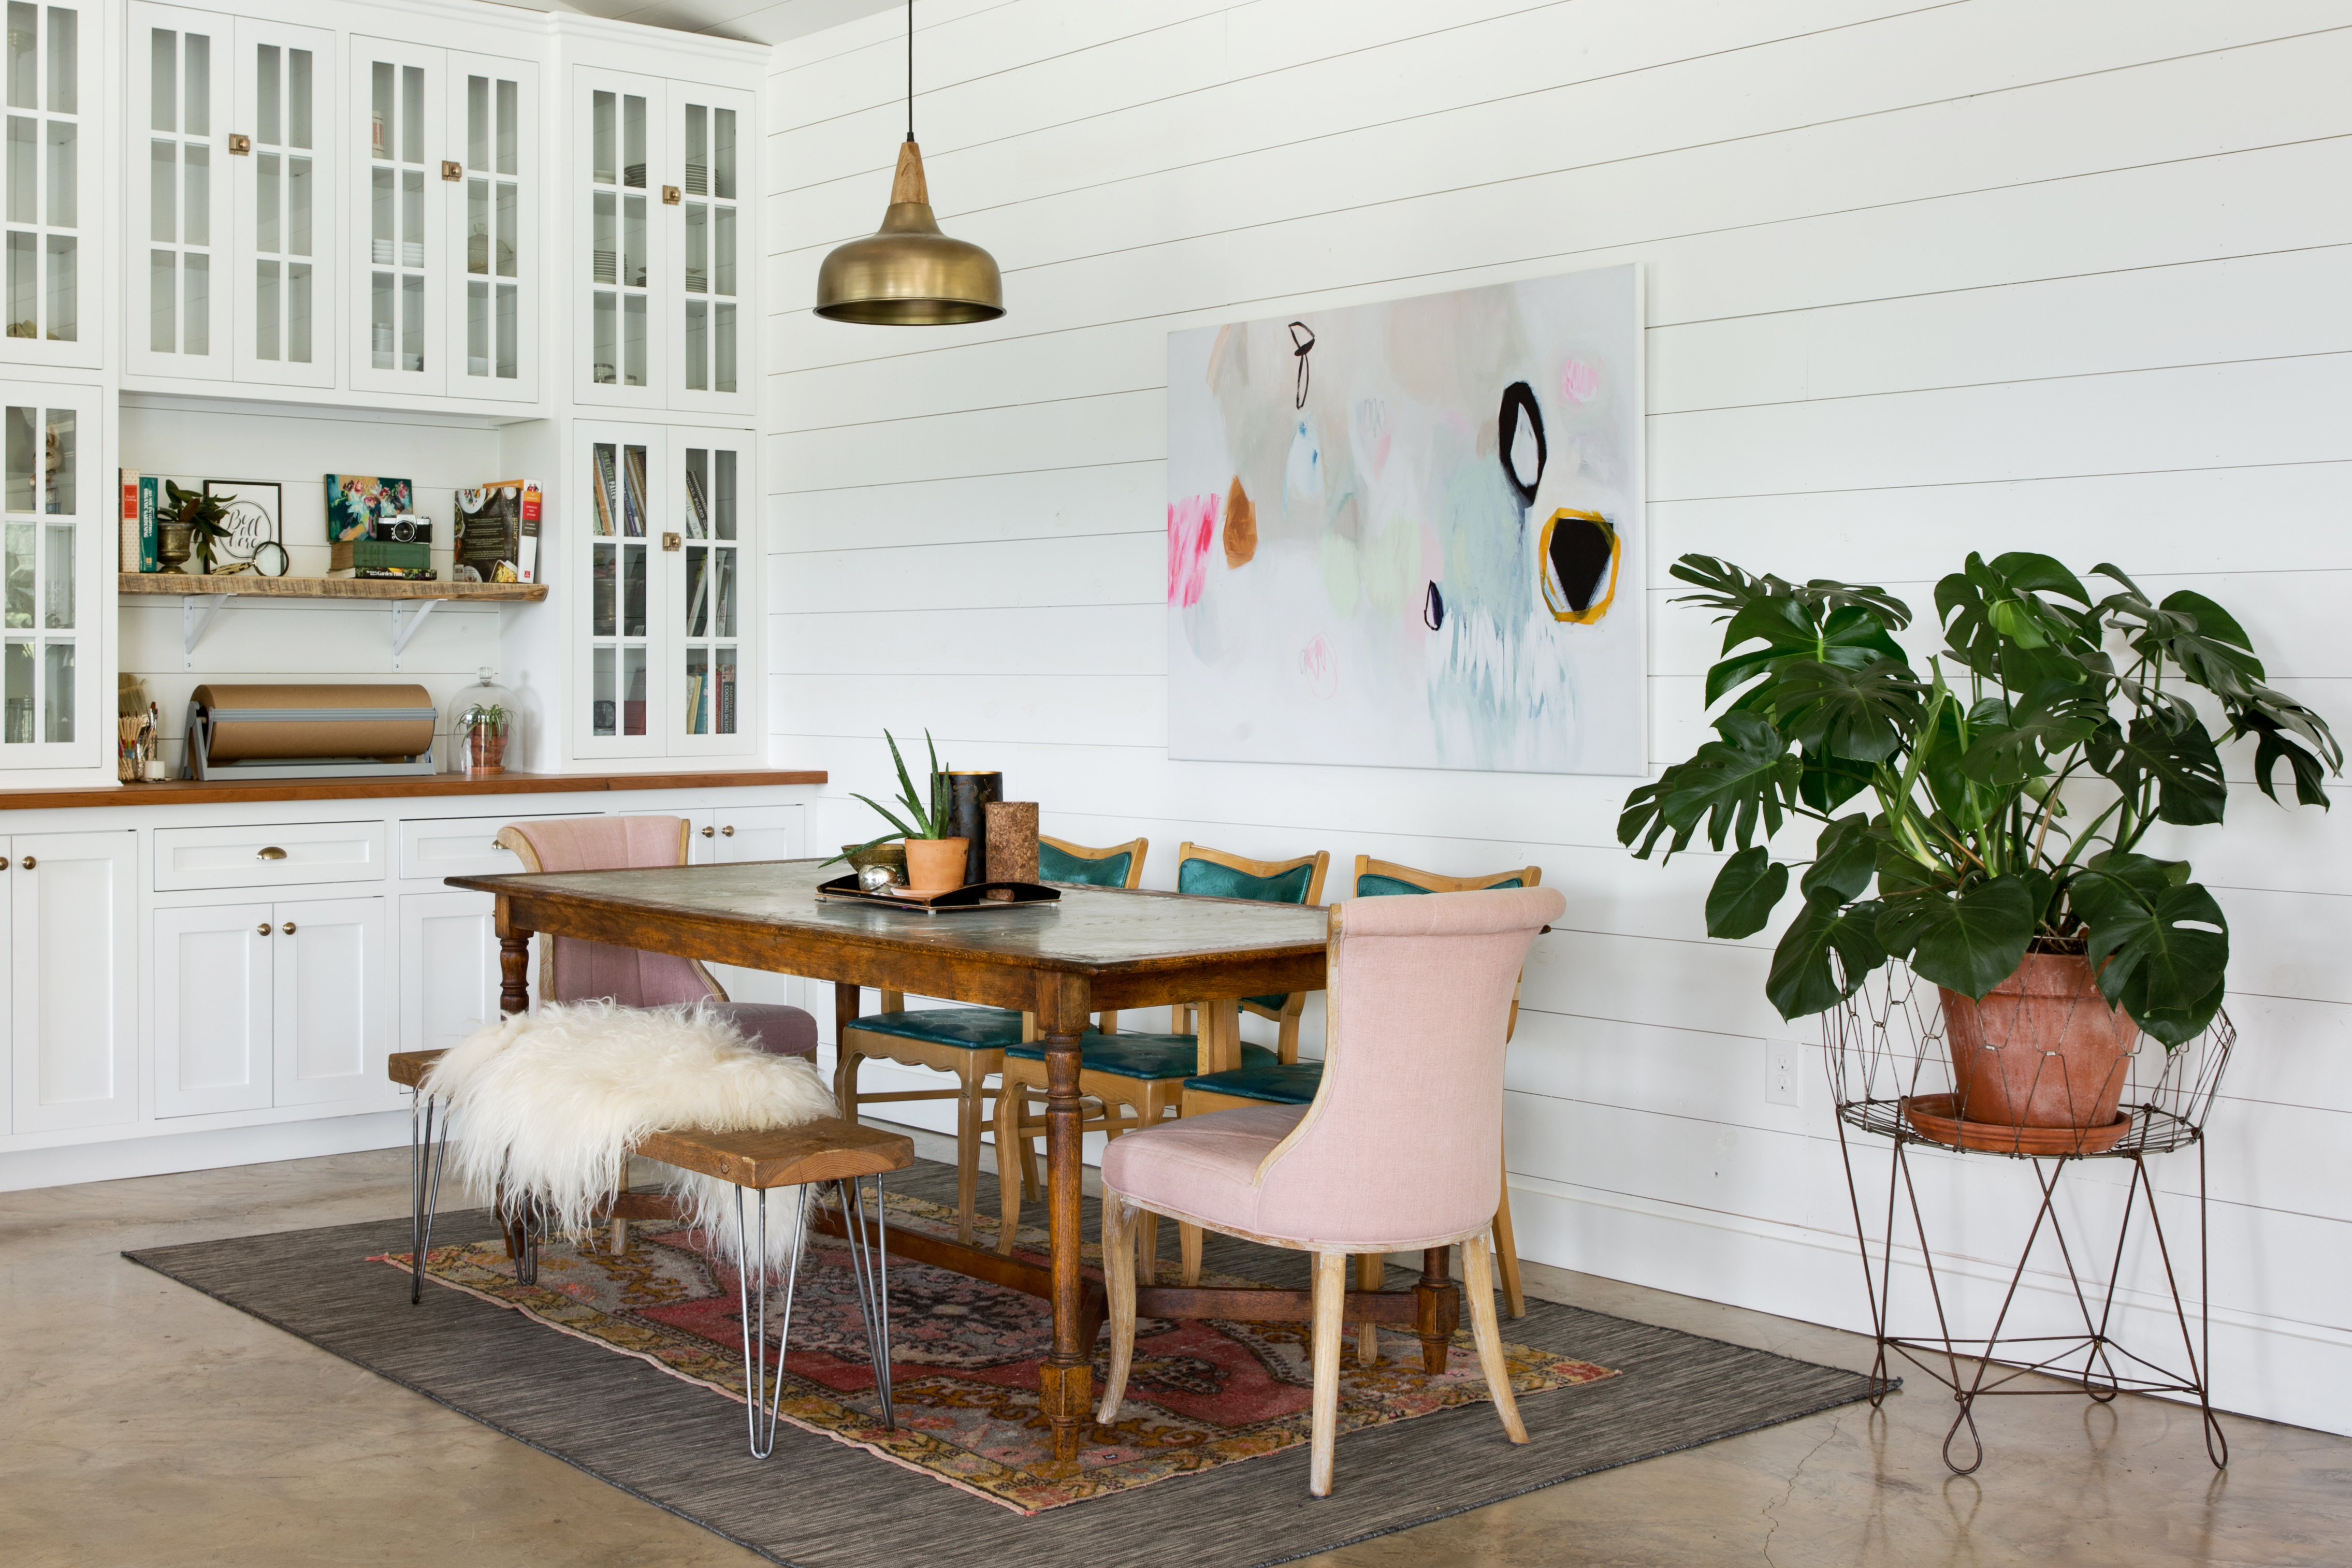 Prime Get The Look Of This Layered Rustic Glam Dining Room Machost Co Dining Chair Design Ideas Machostcouk